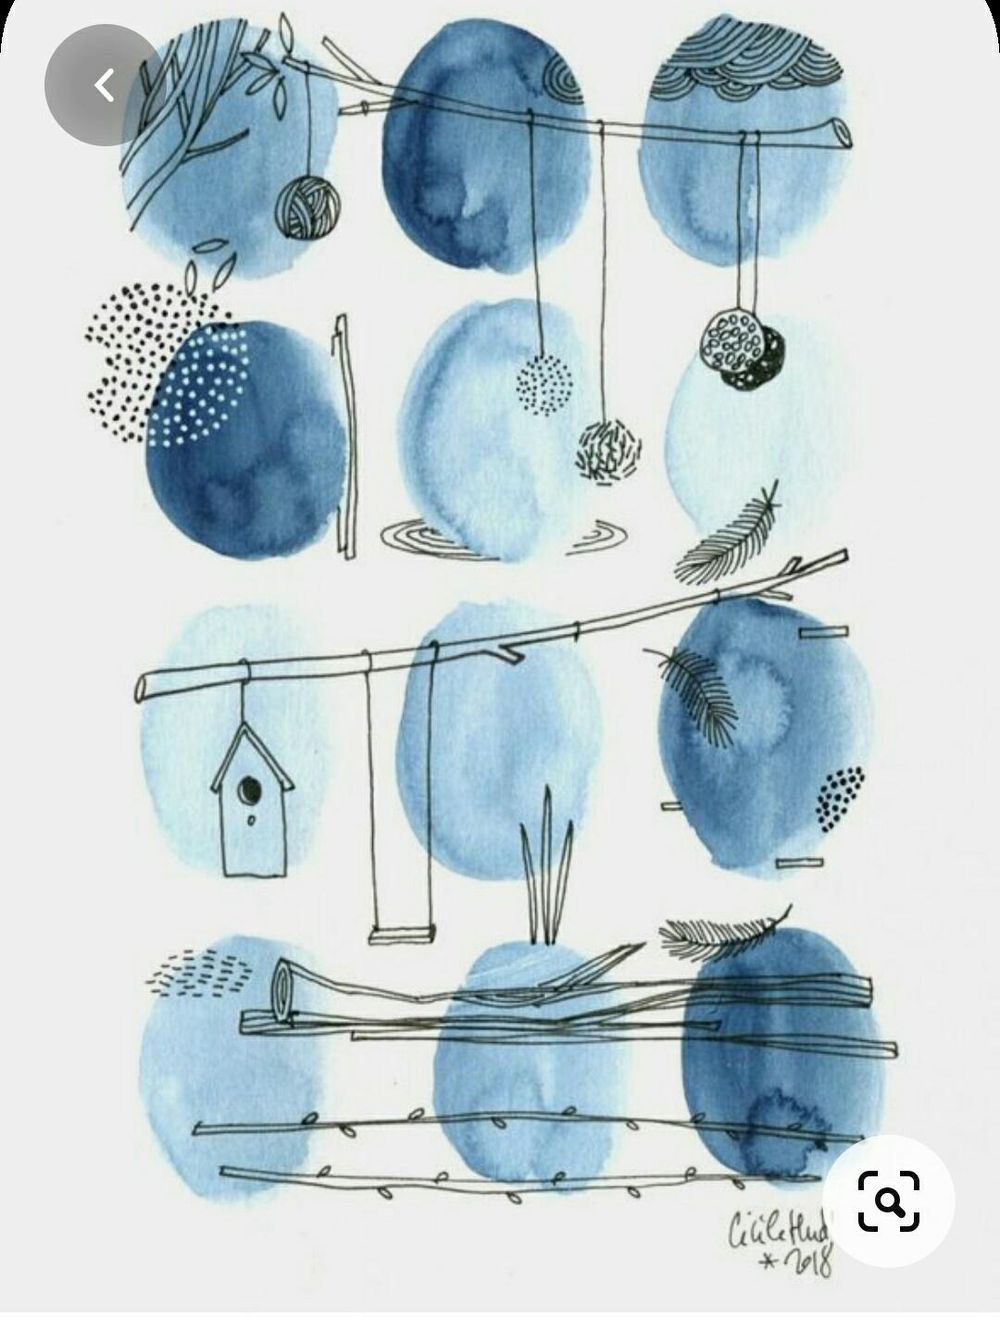 Watercolor blobs - image 1 - student project